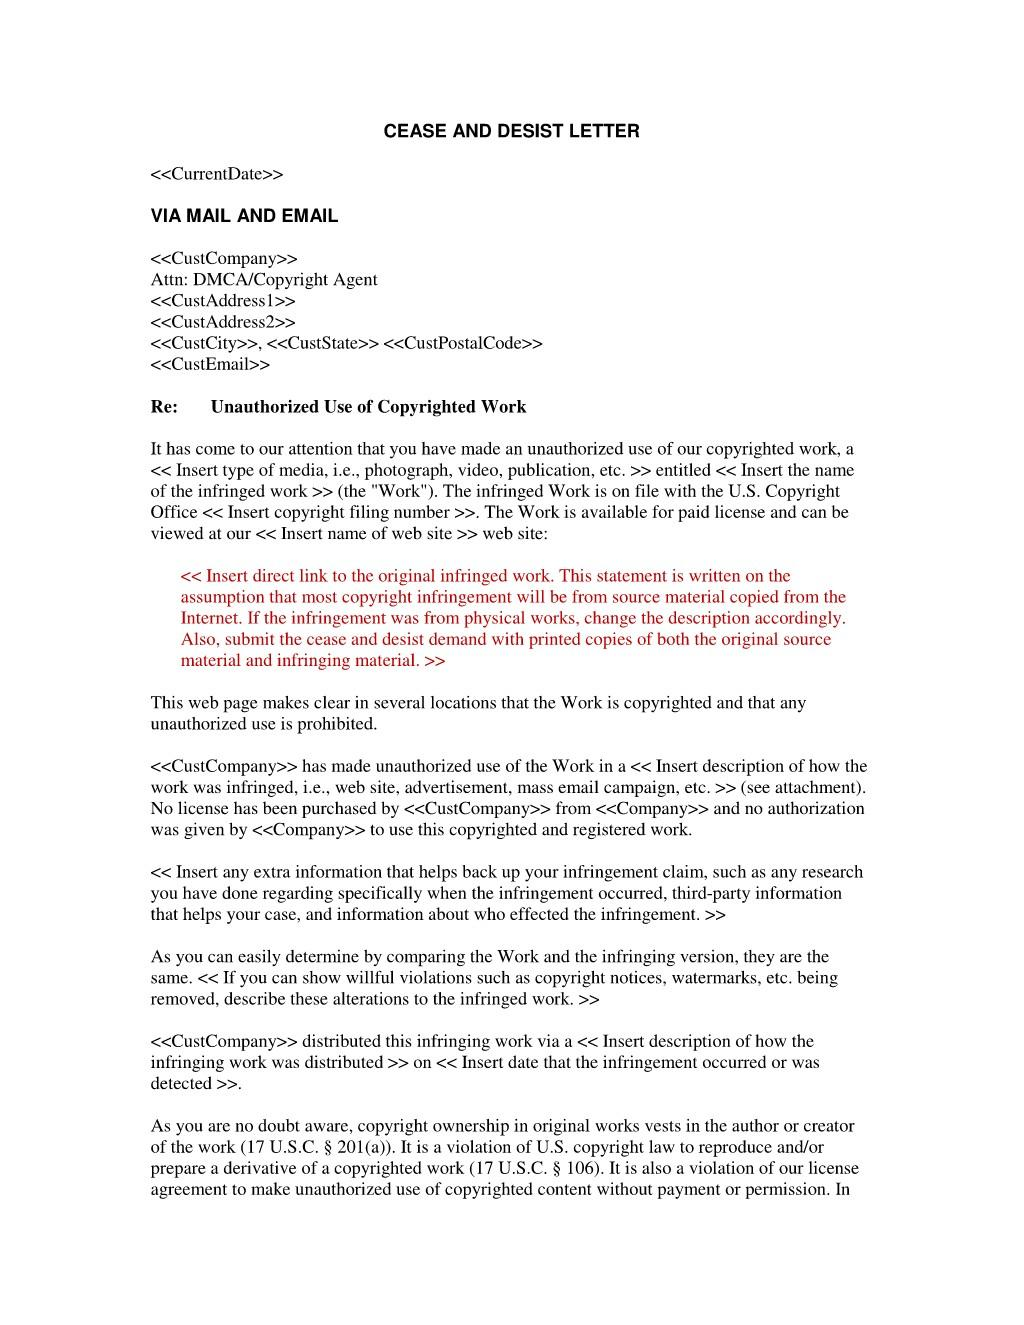 Cease And Desist Letter Template Canada